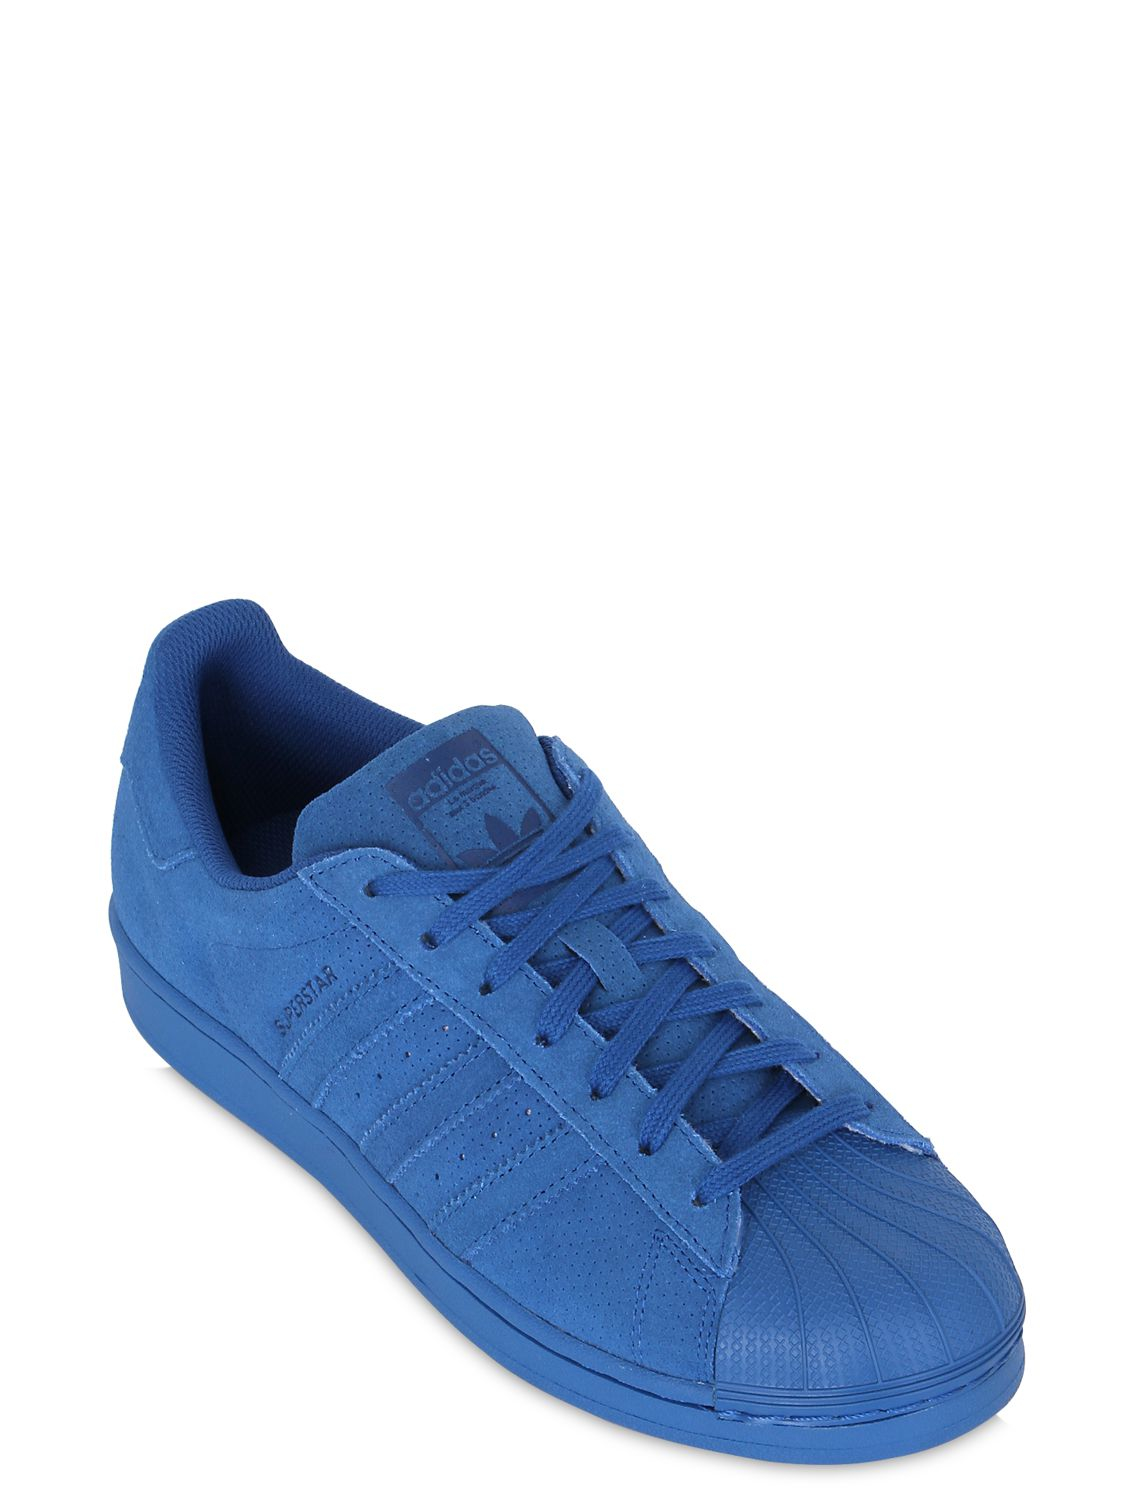 adidas originals superstar adicolor suede sneakers in blue. Black Bedroom Furniture Sets. Home Design Ideas